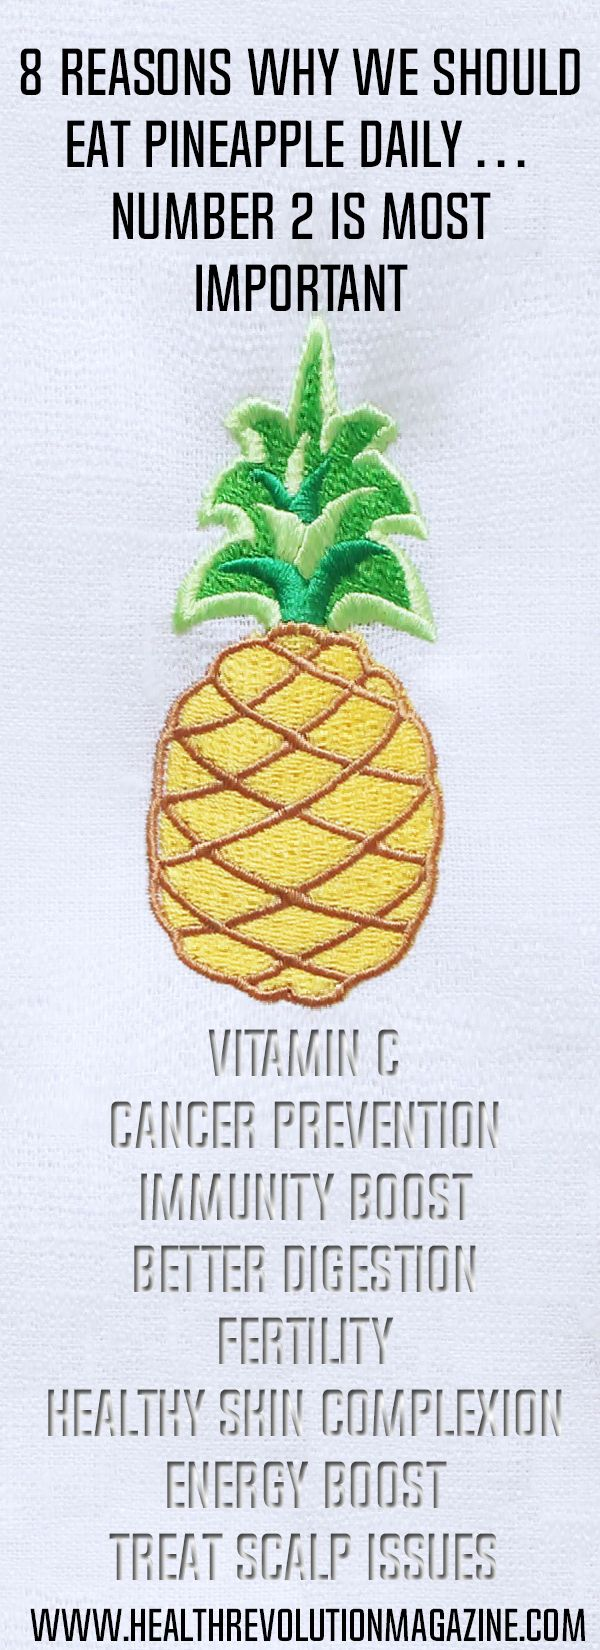 Pineapple is one of the healthiest fruits ever, and we'll give you eight great reasons to add it to your menu. Vitamin C Pineapple provides 131% of the recommended daily intake of vitamin C. eat it in the morning, and enjoy the vitamin splash. Pineapples are also rich in iron and calcium. Cancer prevention Antioxidants Continue Reading